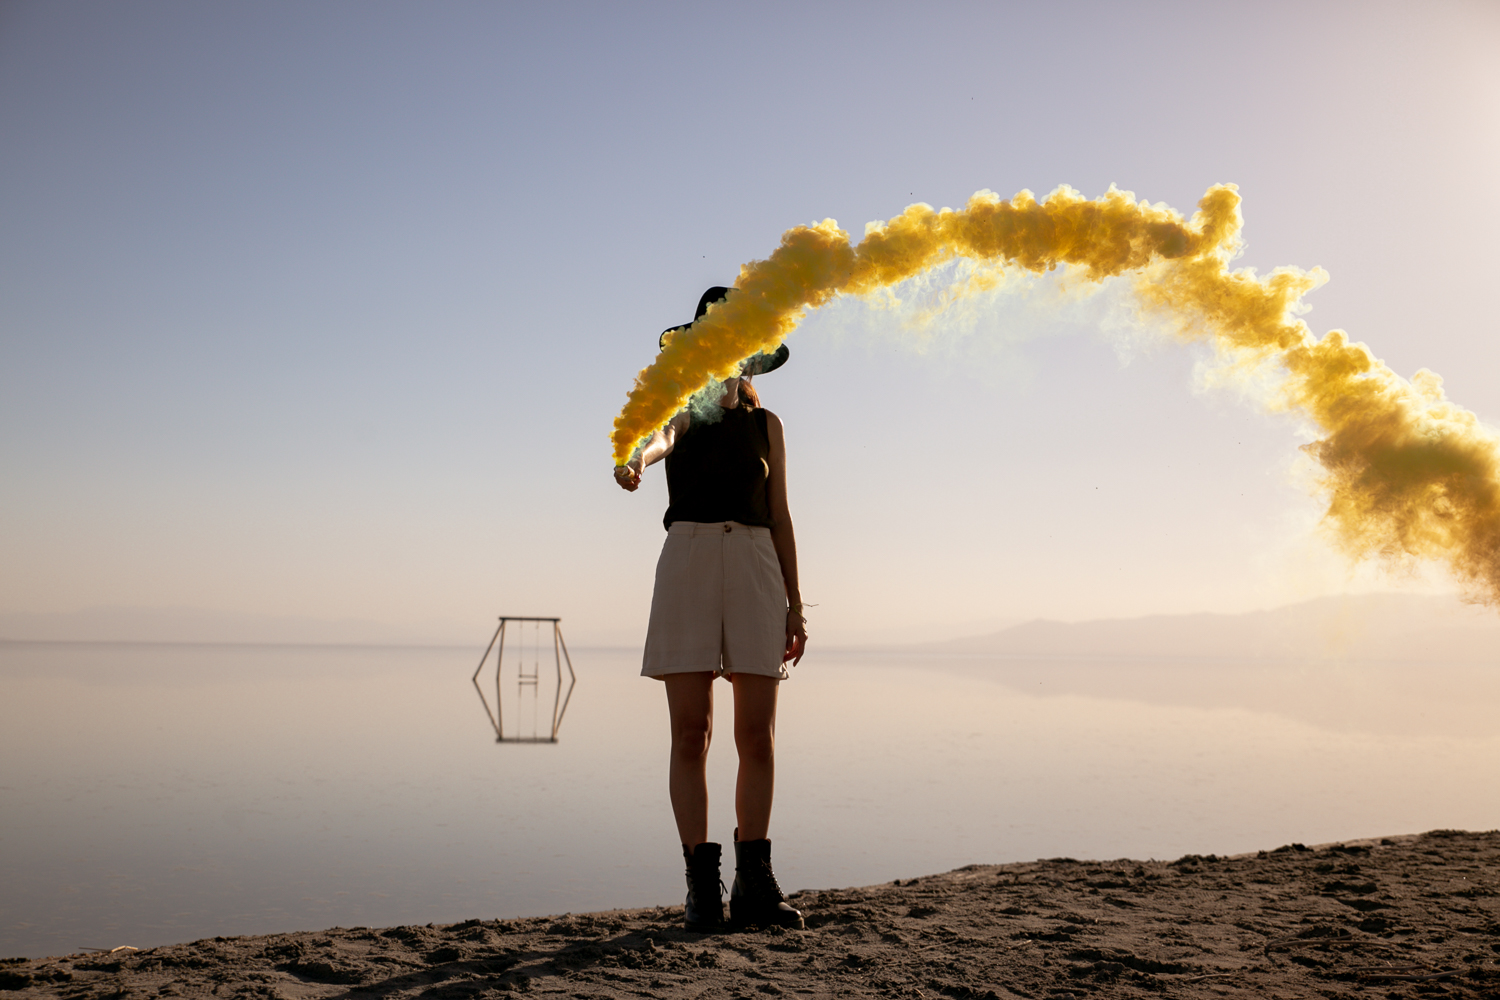 Smokebomb Photoshoot in the desert #smokebomb